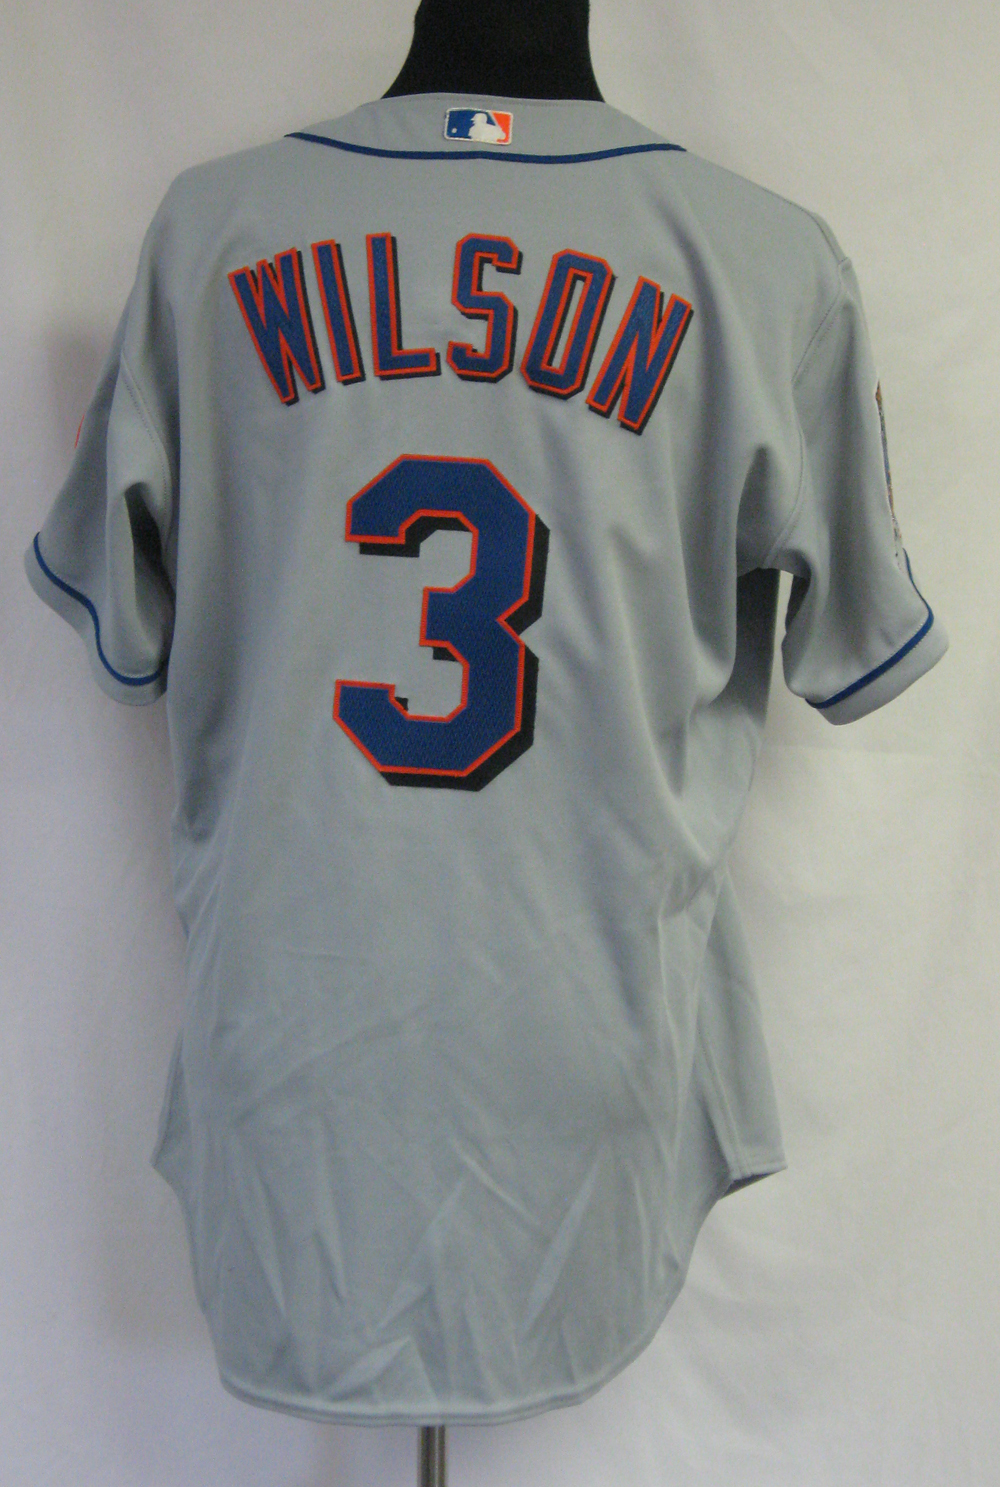 2002 New York Mets Vance Wilson #3 Game Issued Possibly Used Road Jersey 5727